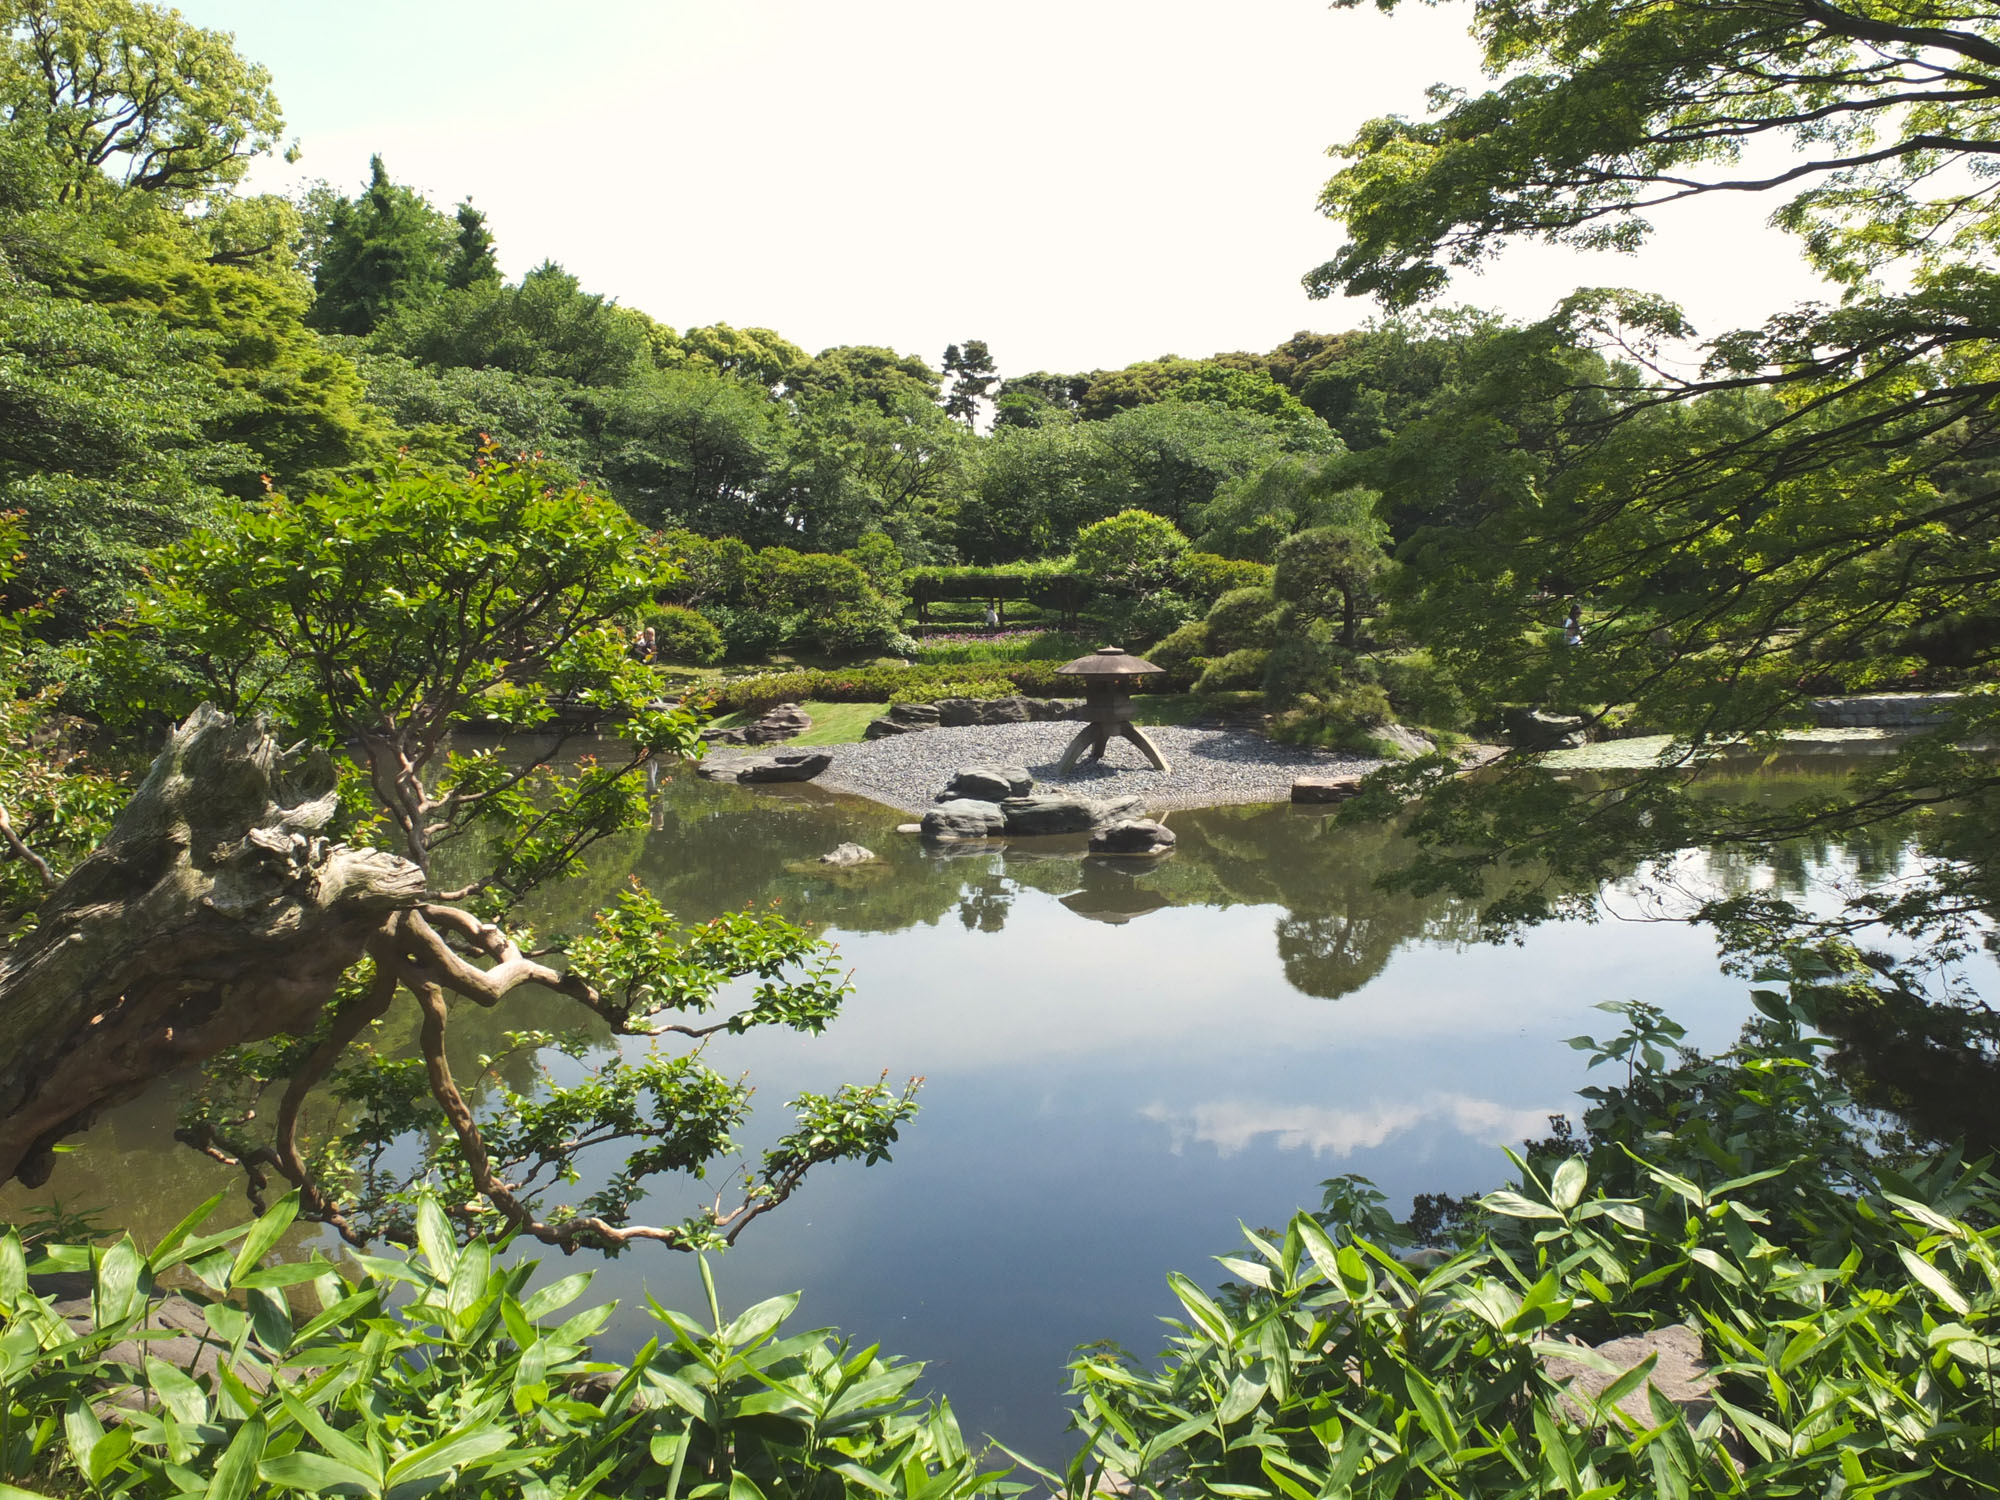 A peaceful garden nestled in the heart of Tokyo.